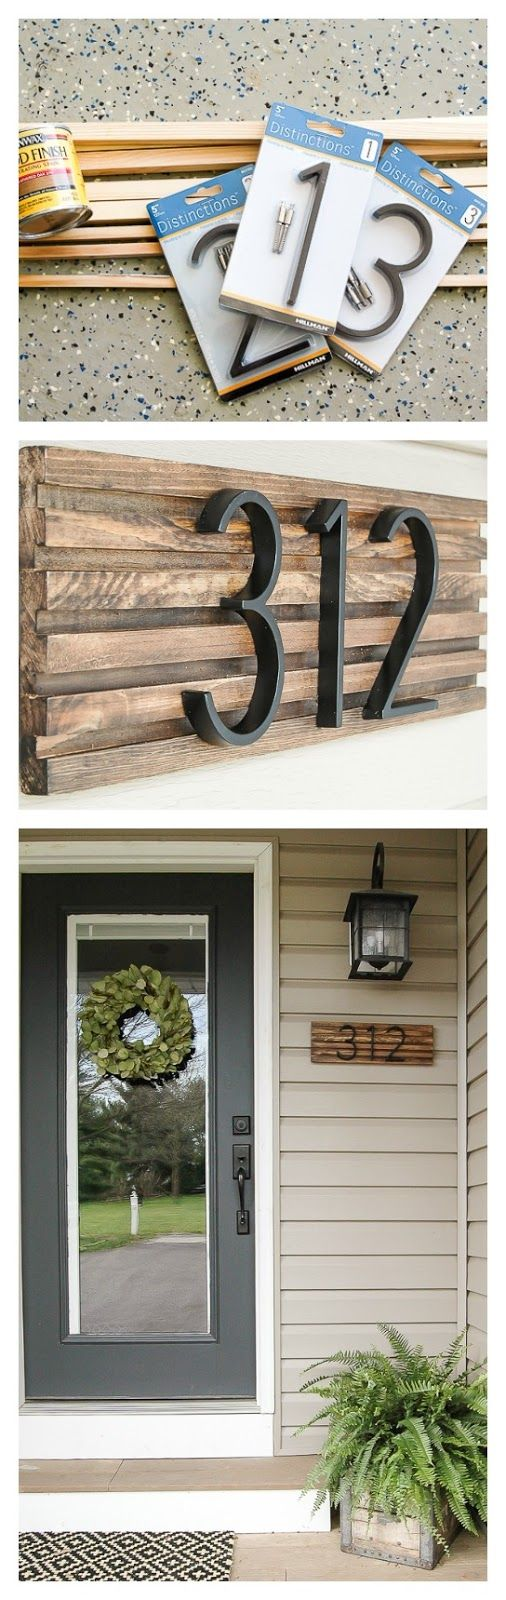 How to Make a Modern House Number Sign Rustic house